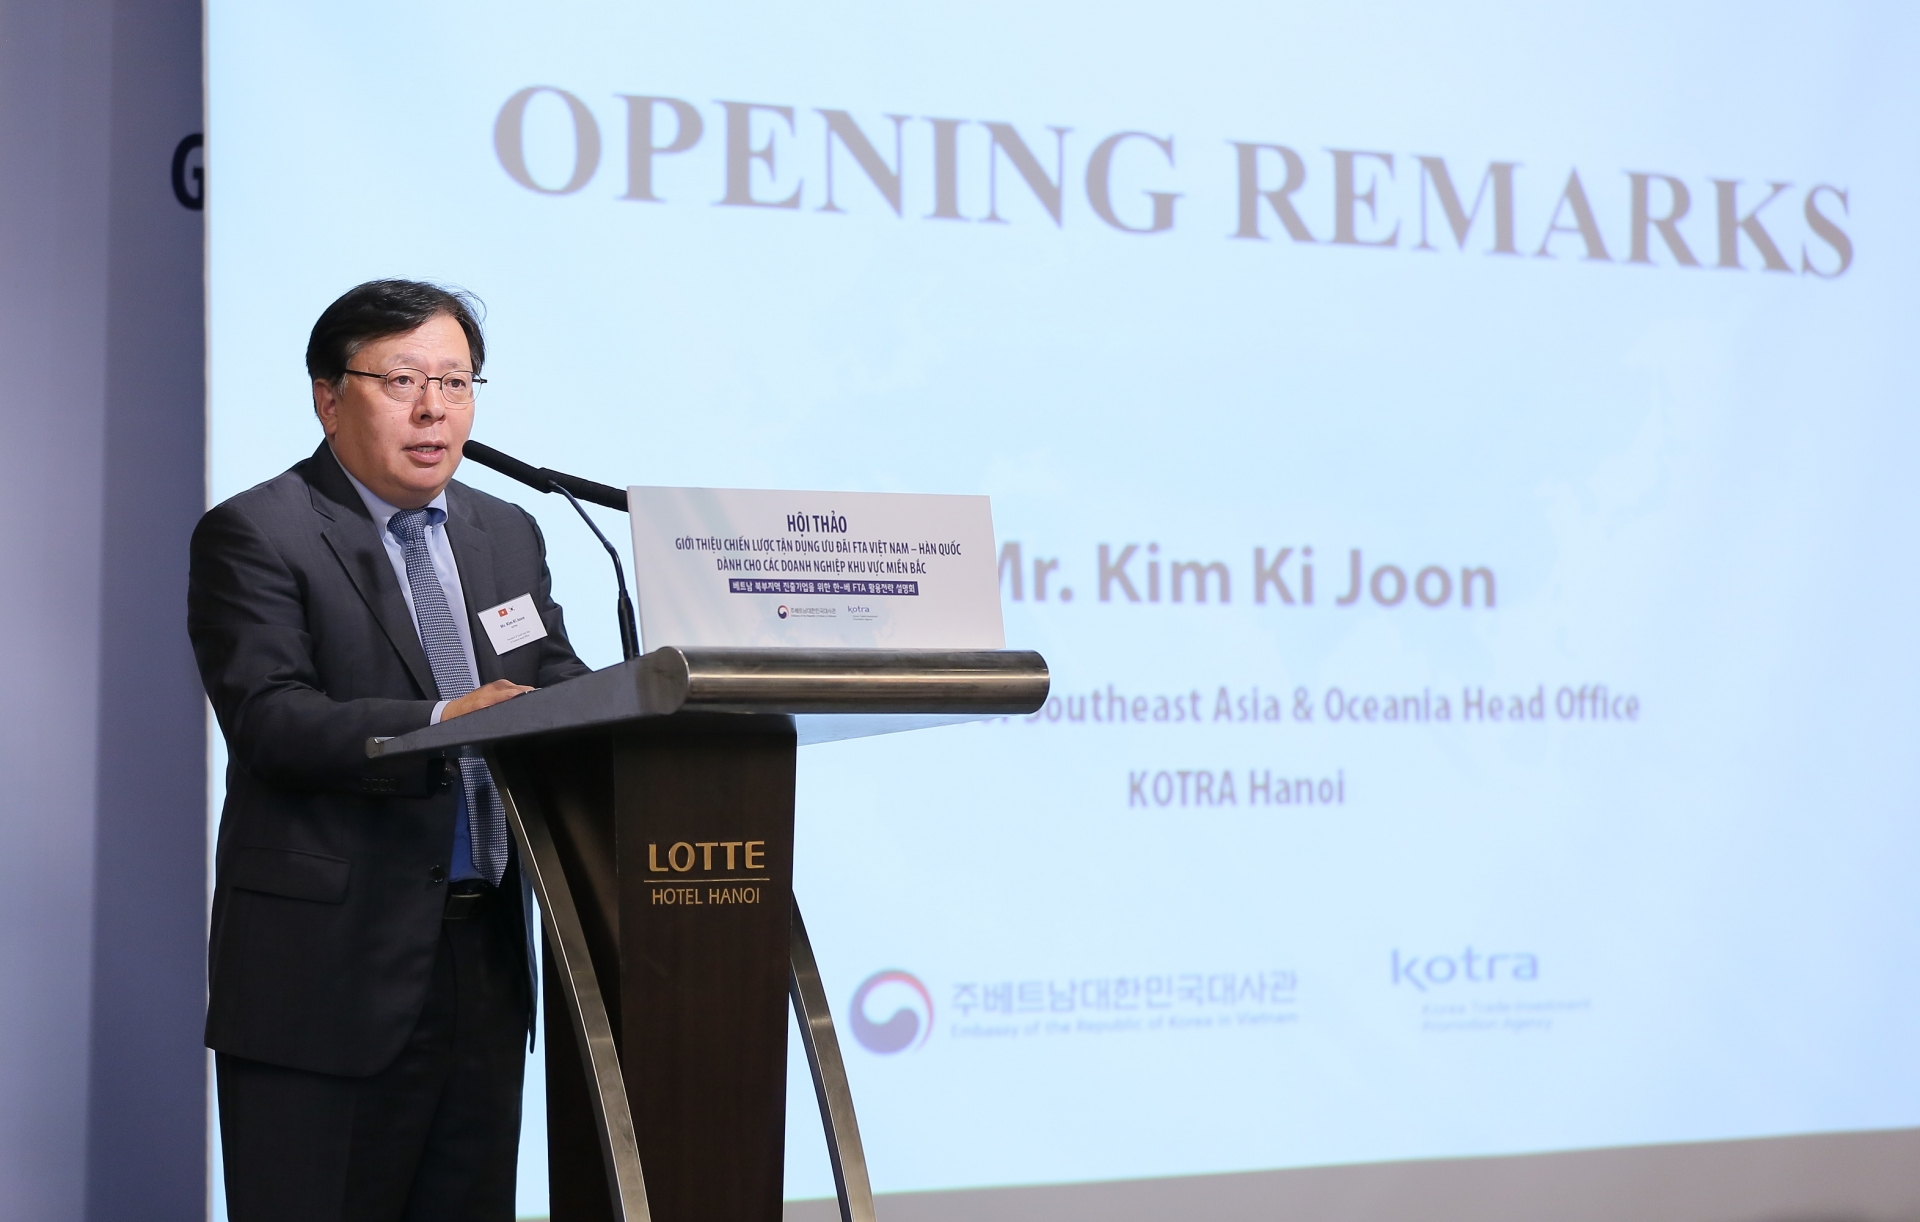 kotra hanoi holds vkfta utilisation seminar to improve gains